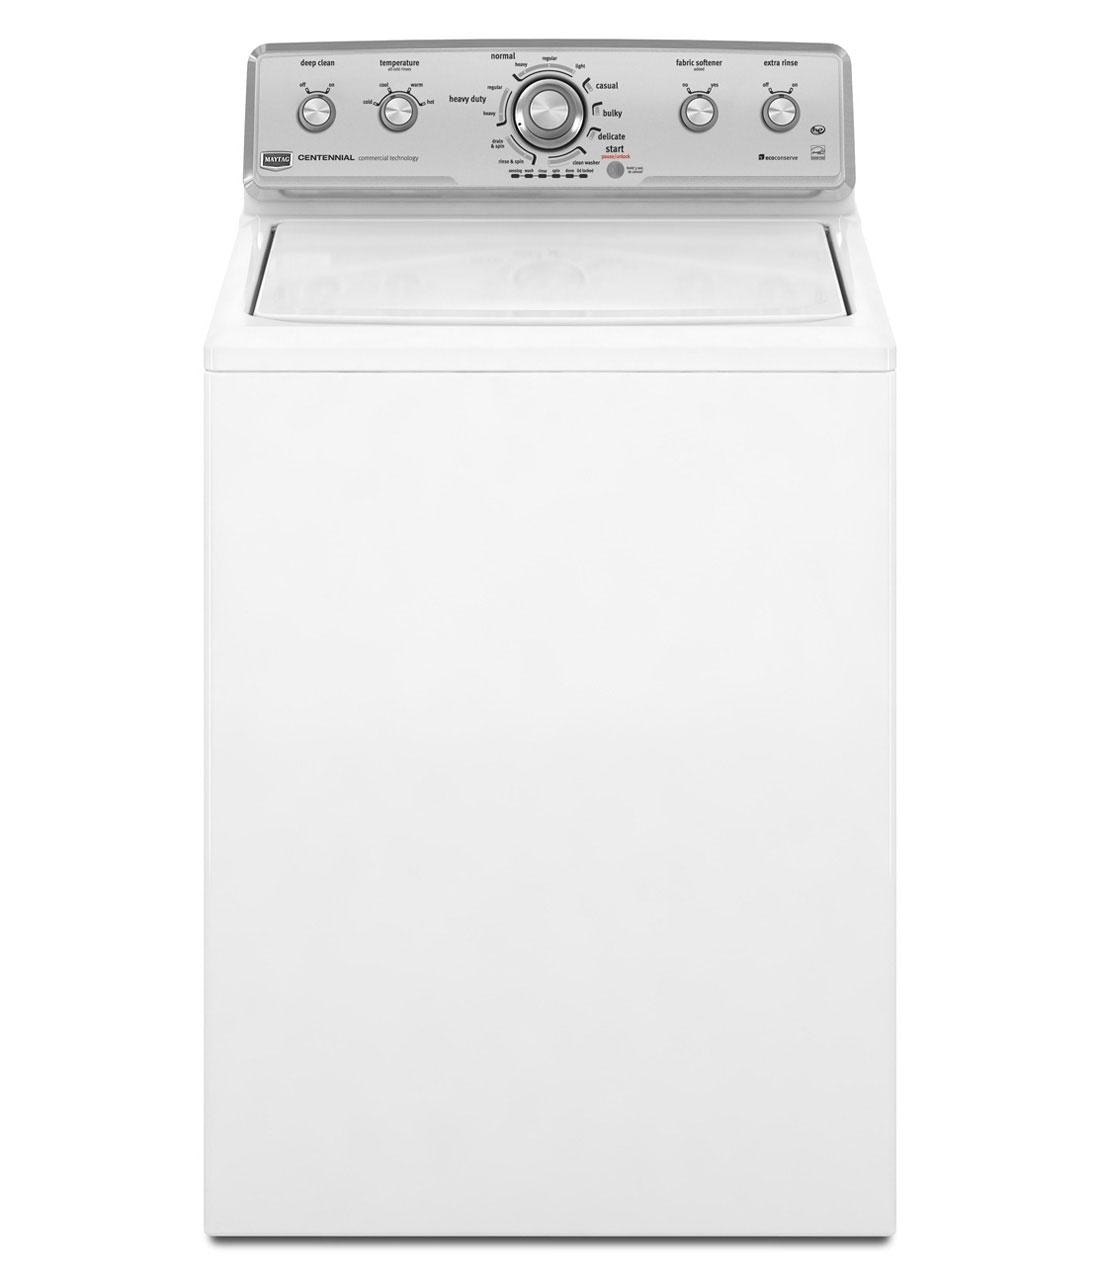 Maytag Centennial Dryer On Medc200xw Diagram Belt Diagrams Repaircliniccom Including Washer Along With